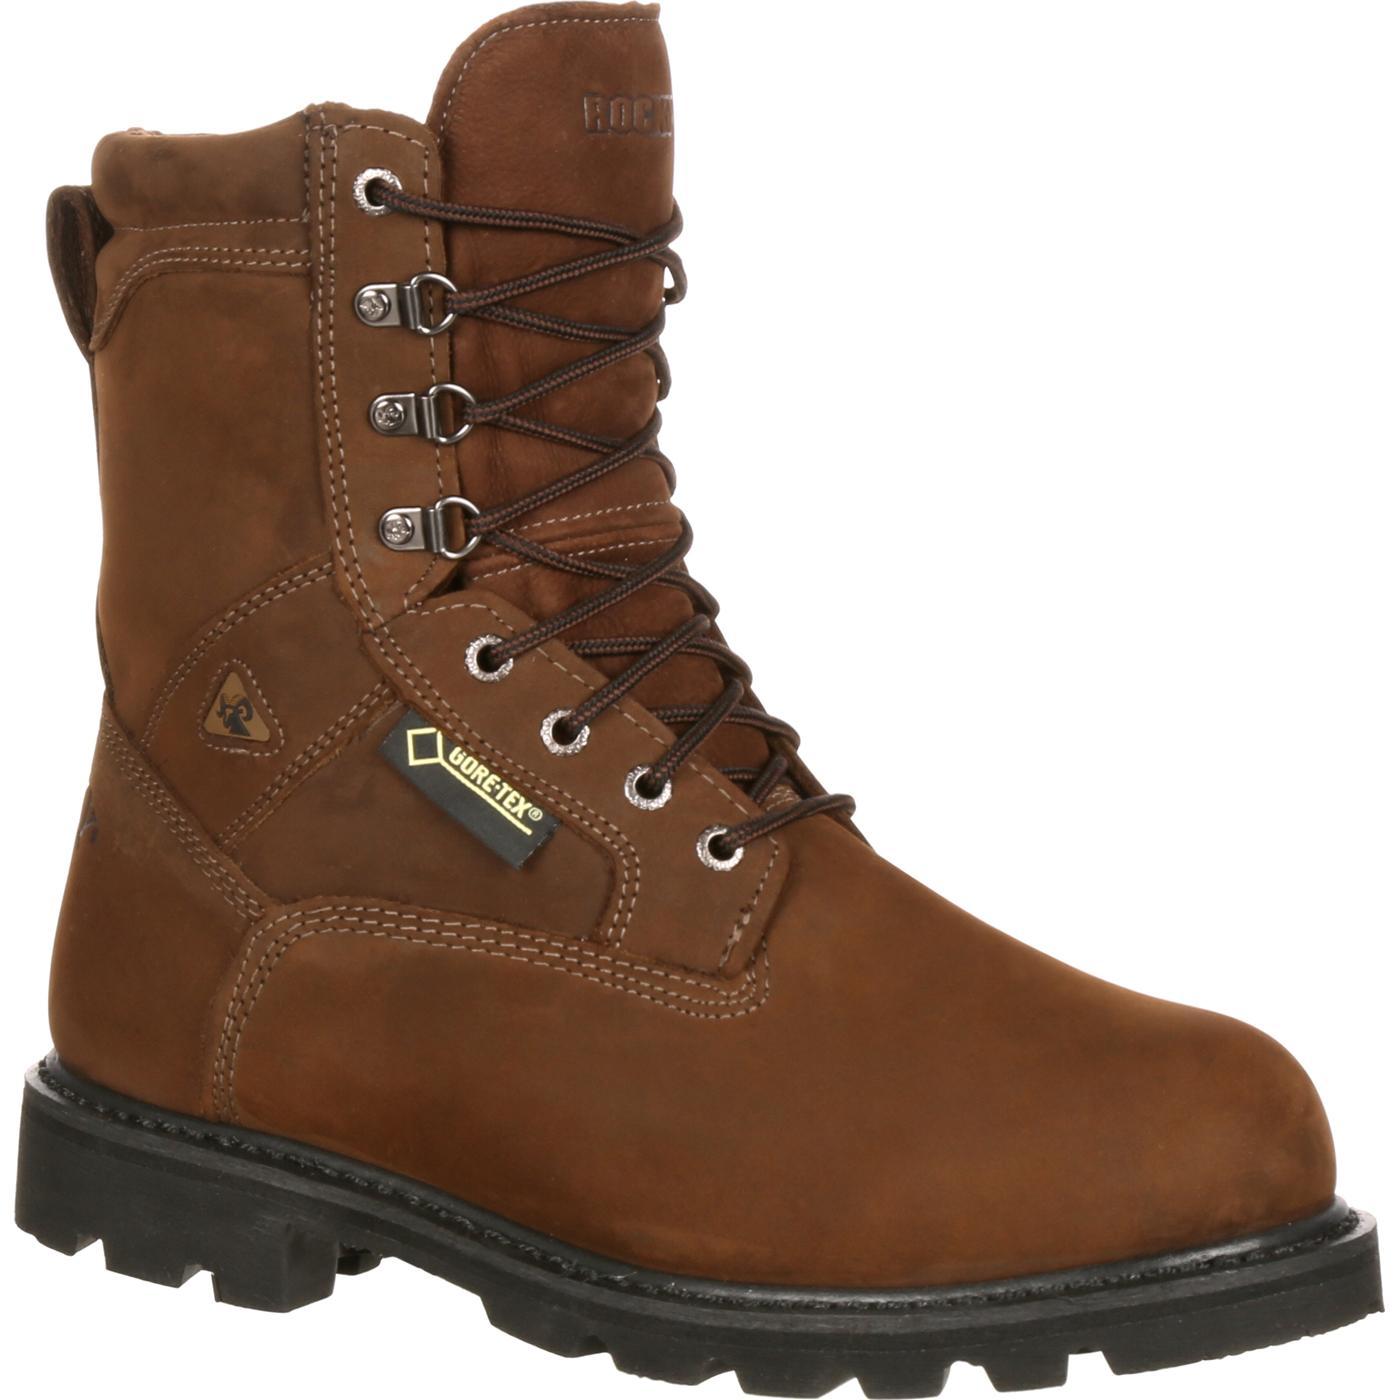 6223 Rocky Ranger Steel Toe Insulated Gore Tex 174 Work Boots